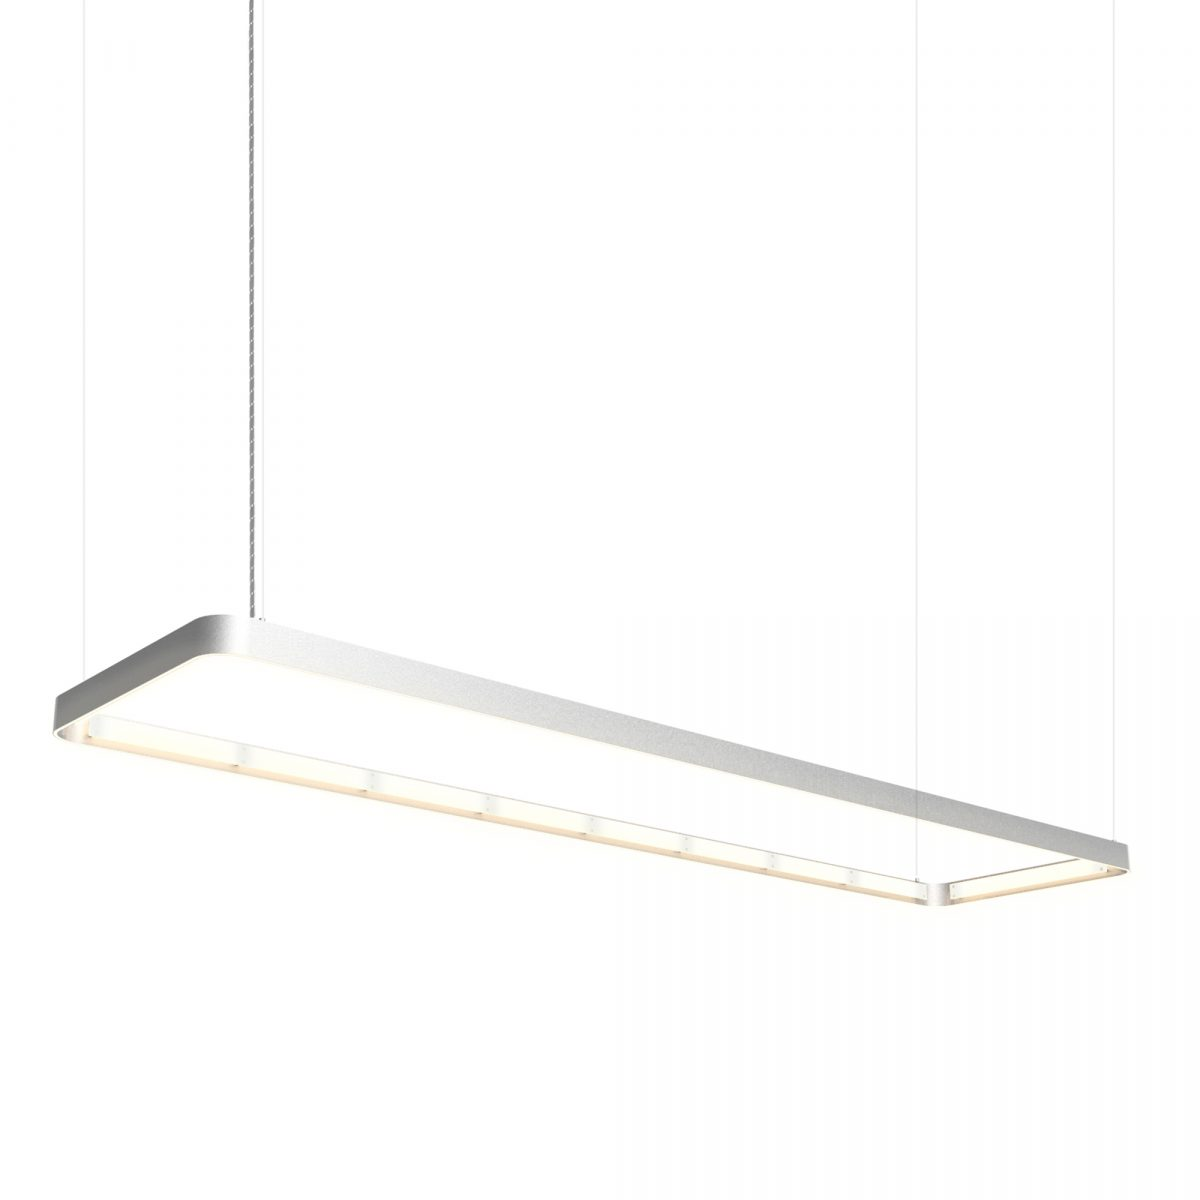 JSPR Eden Deco 50×200 Silver Rectangle